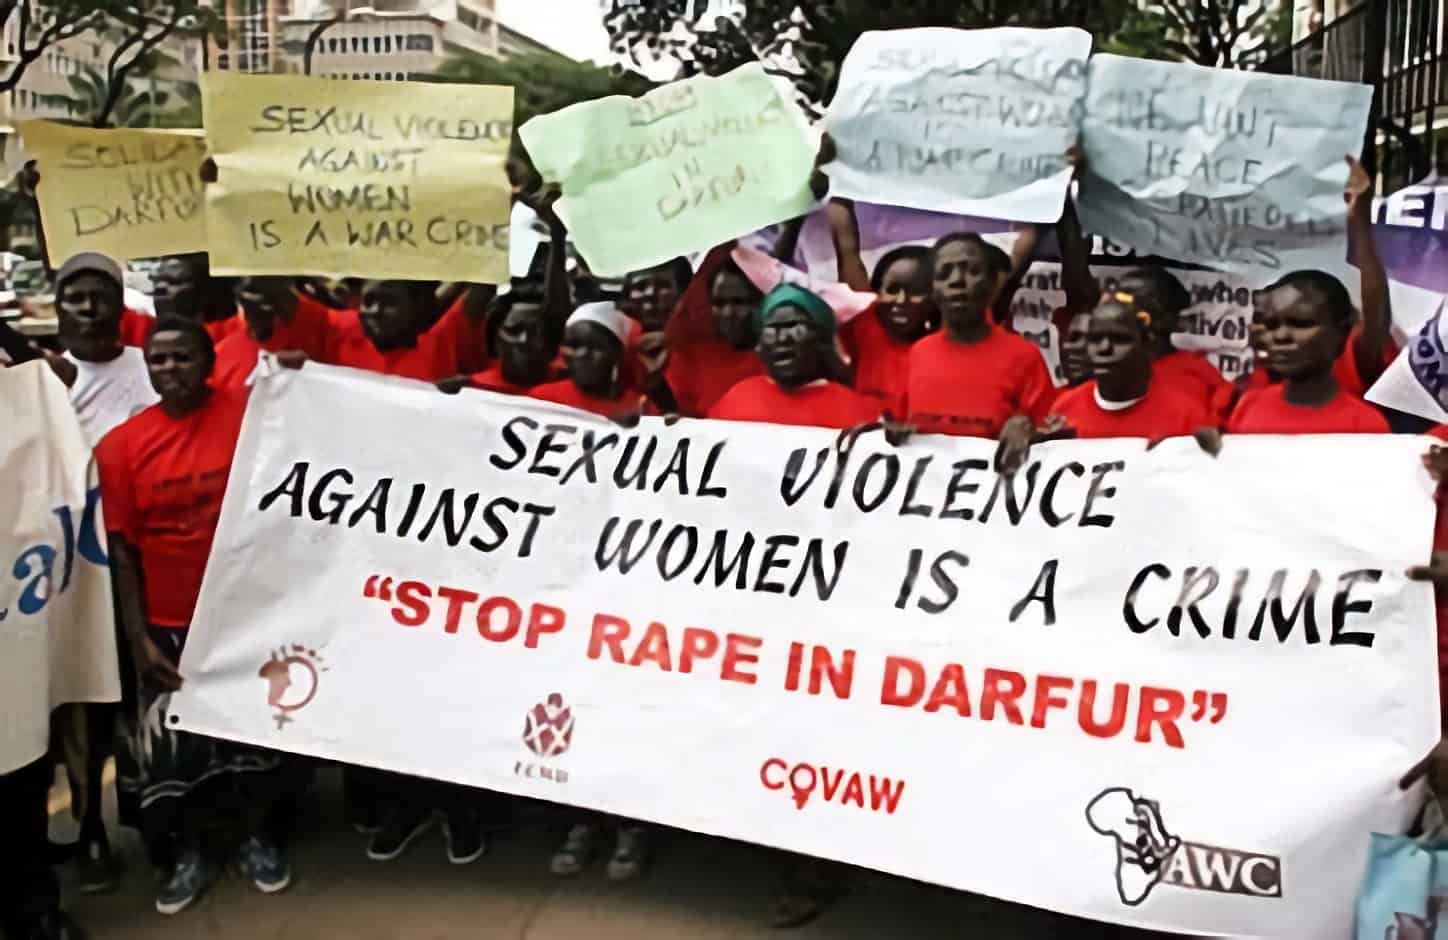 Another pandemic: Rising domestic violence under quarantine in Sudan